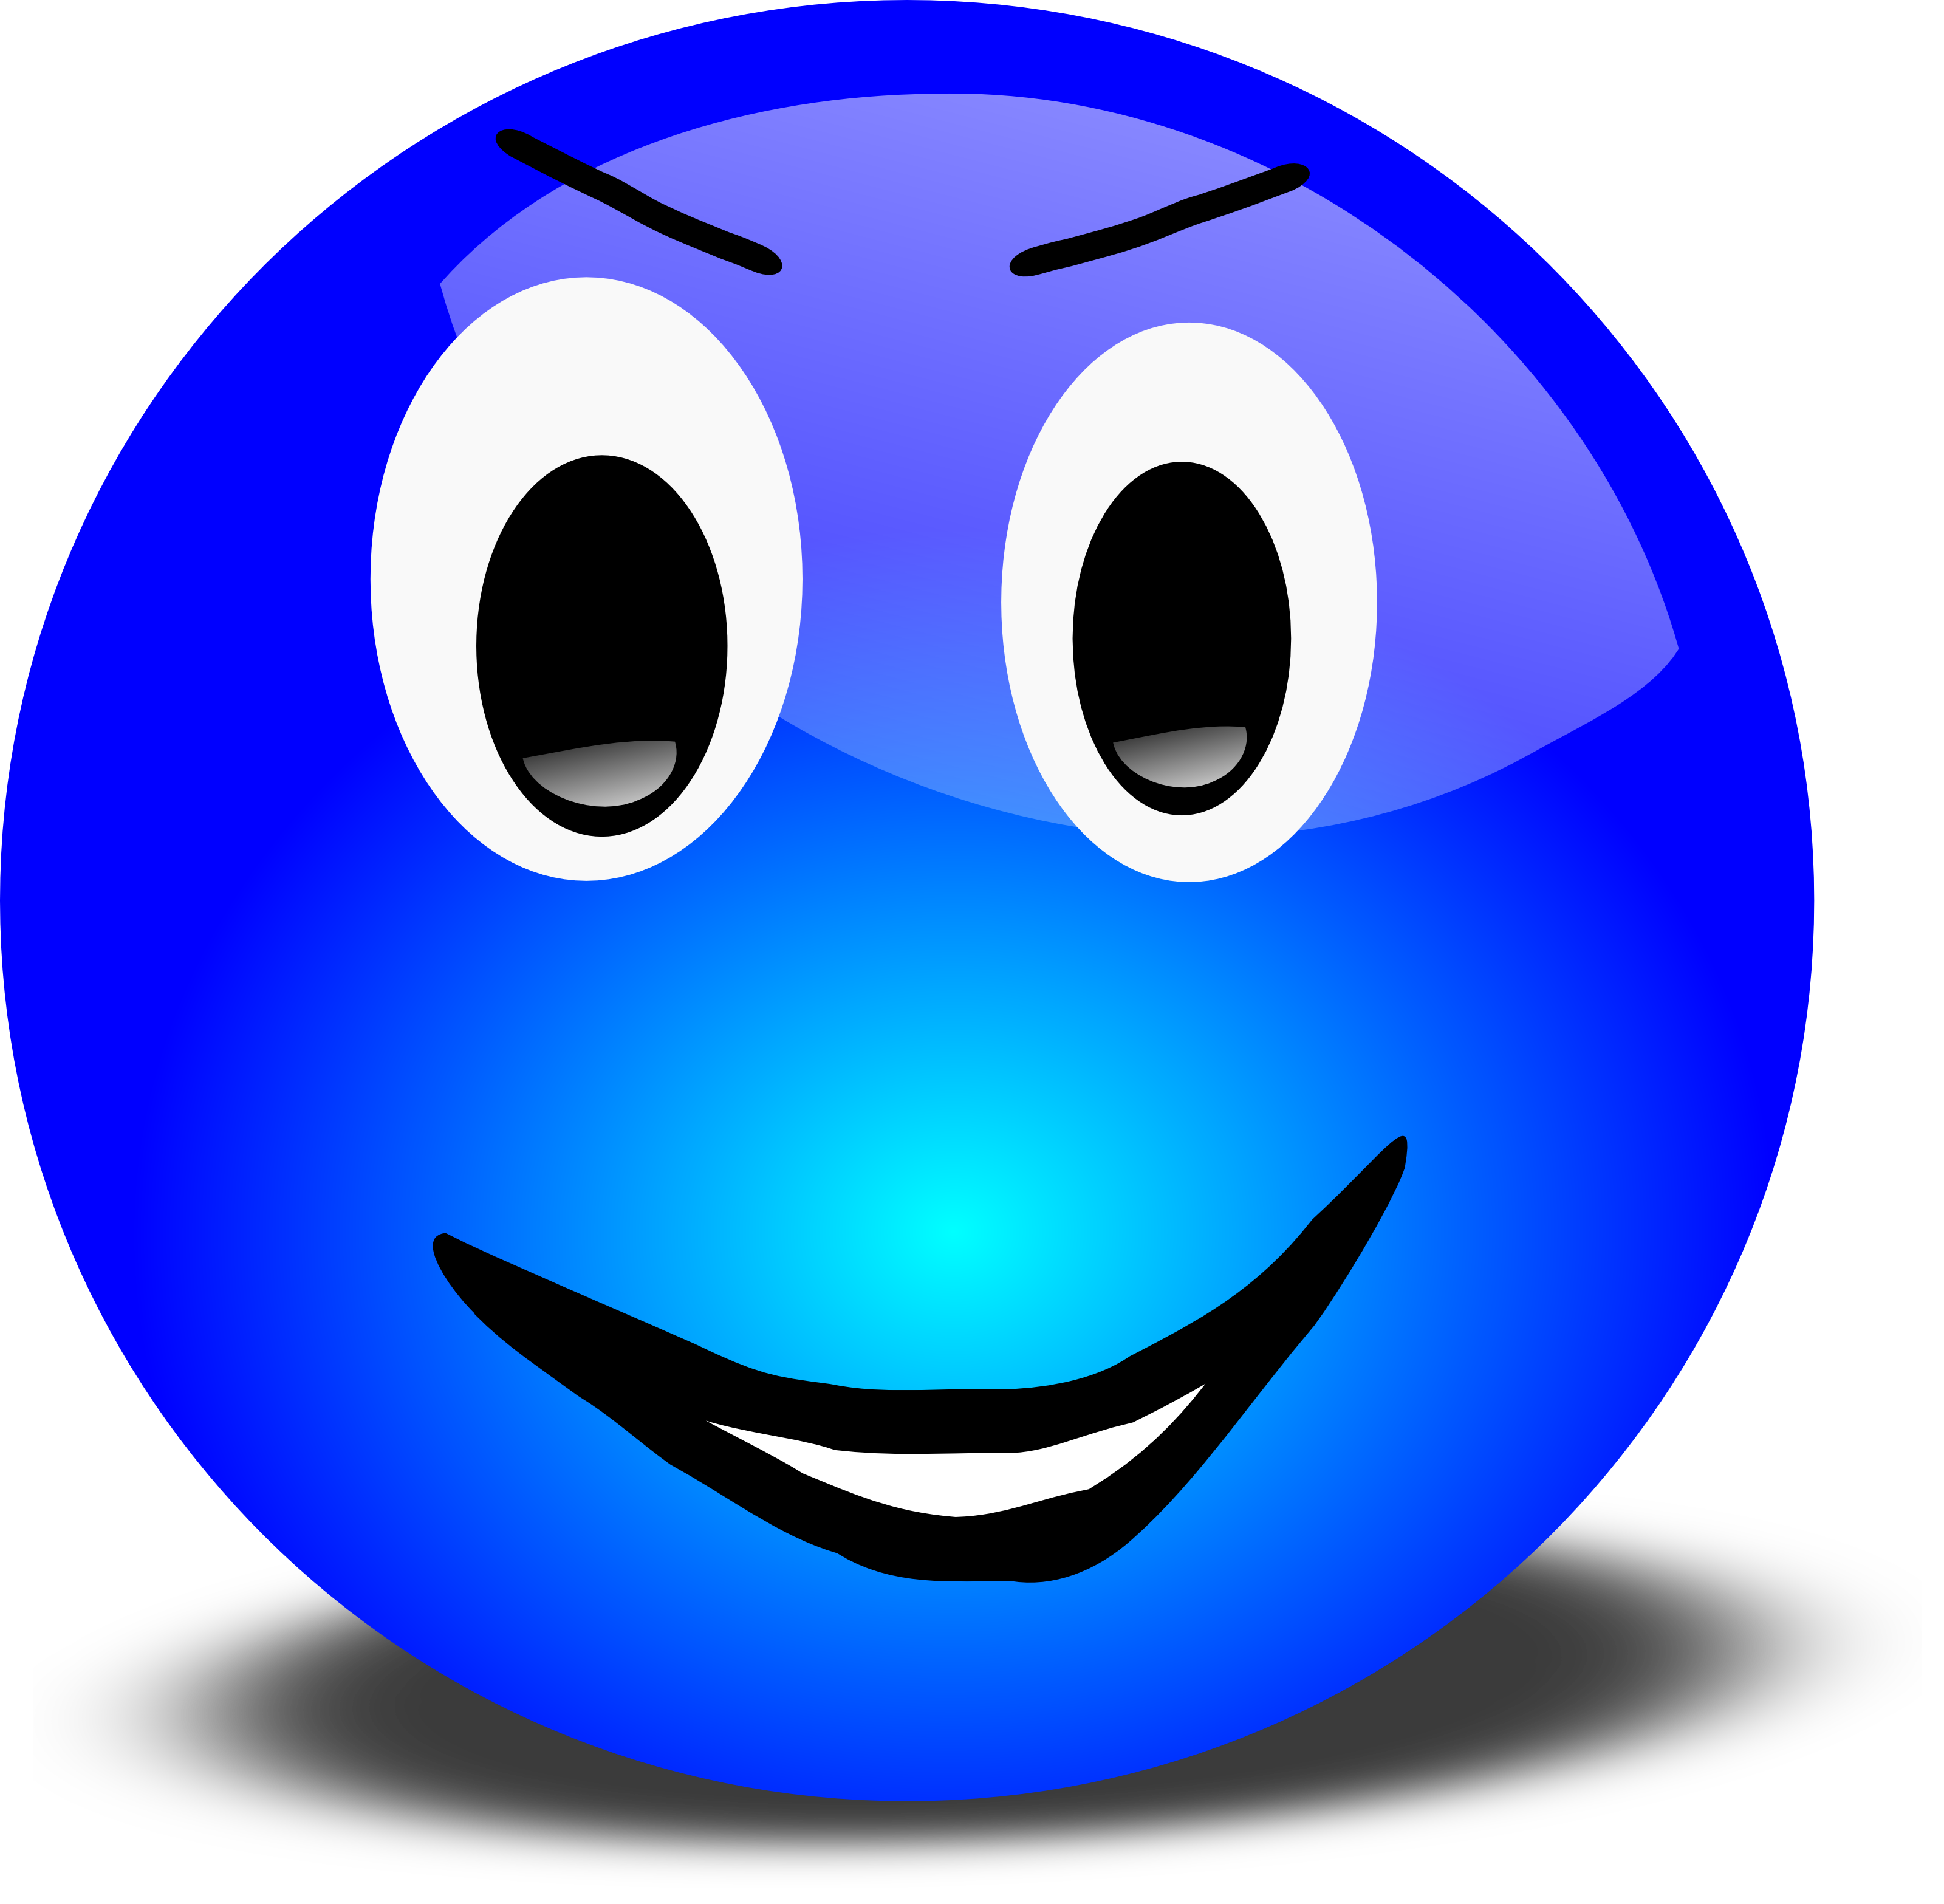 Happy smiley face png. Images free download